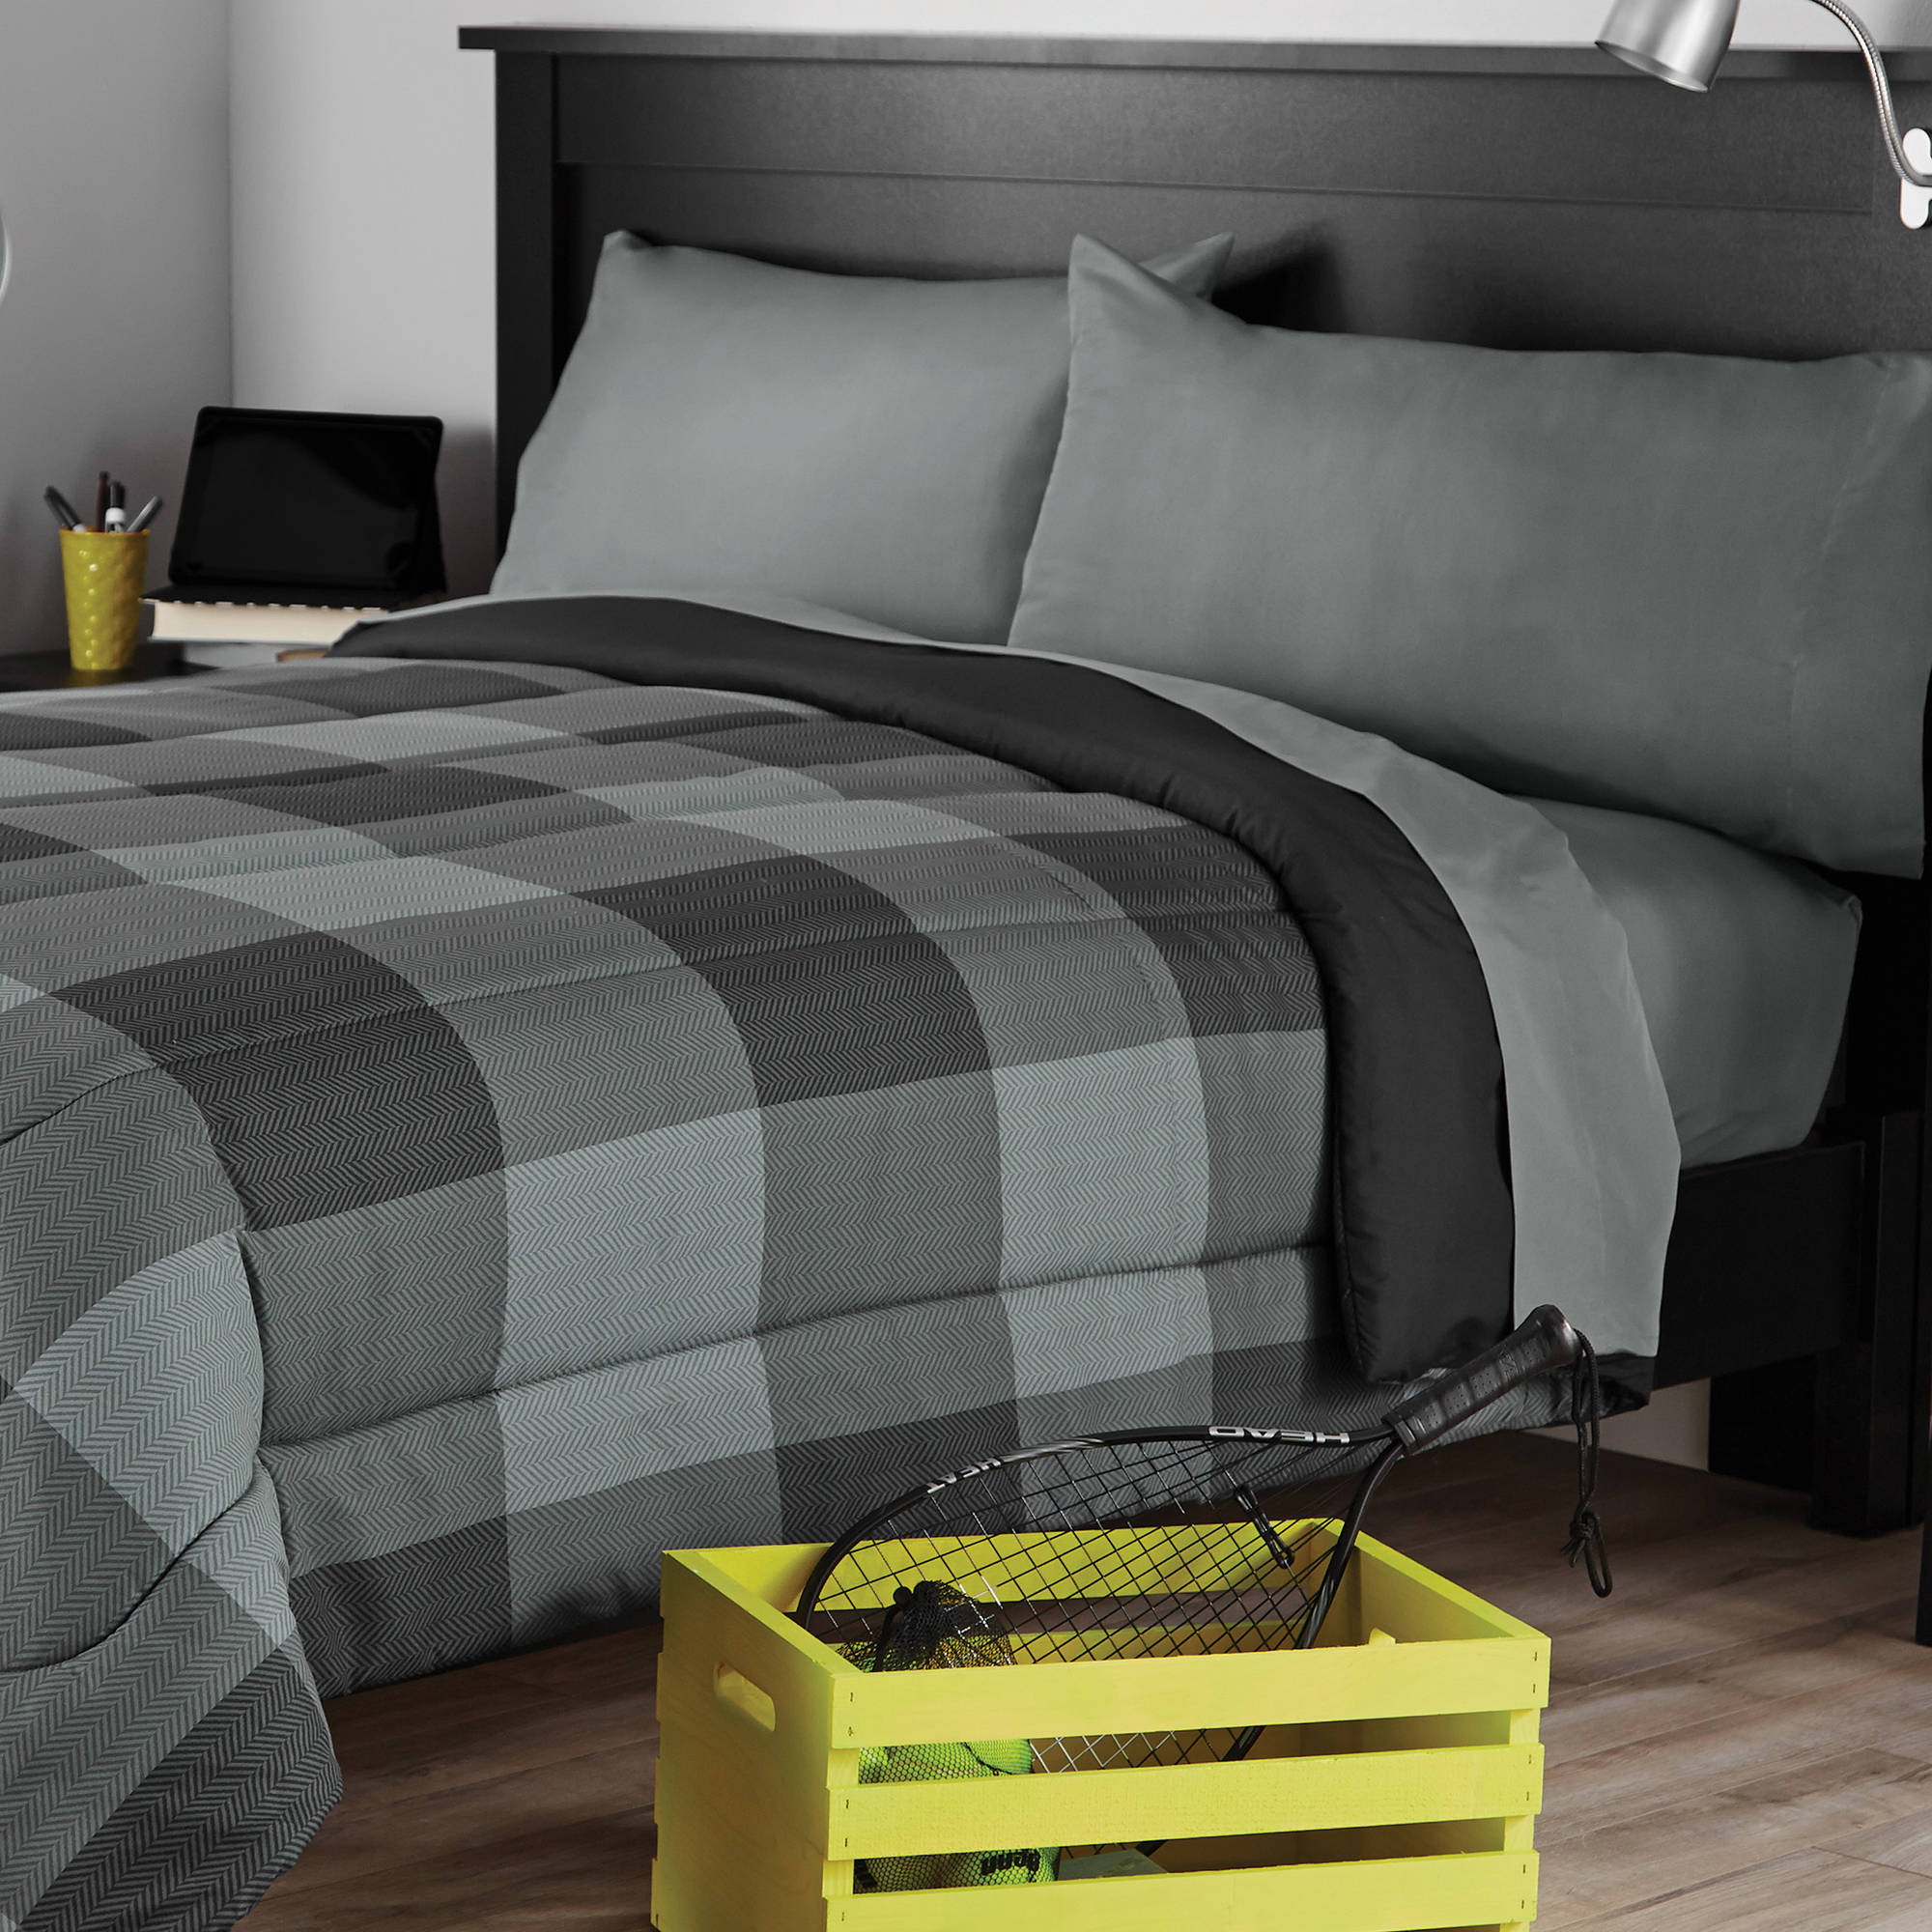 Mainstays Printed Bedding Comforter